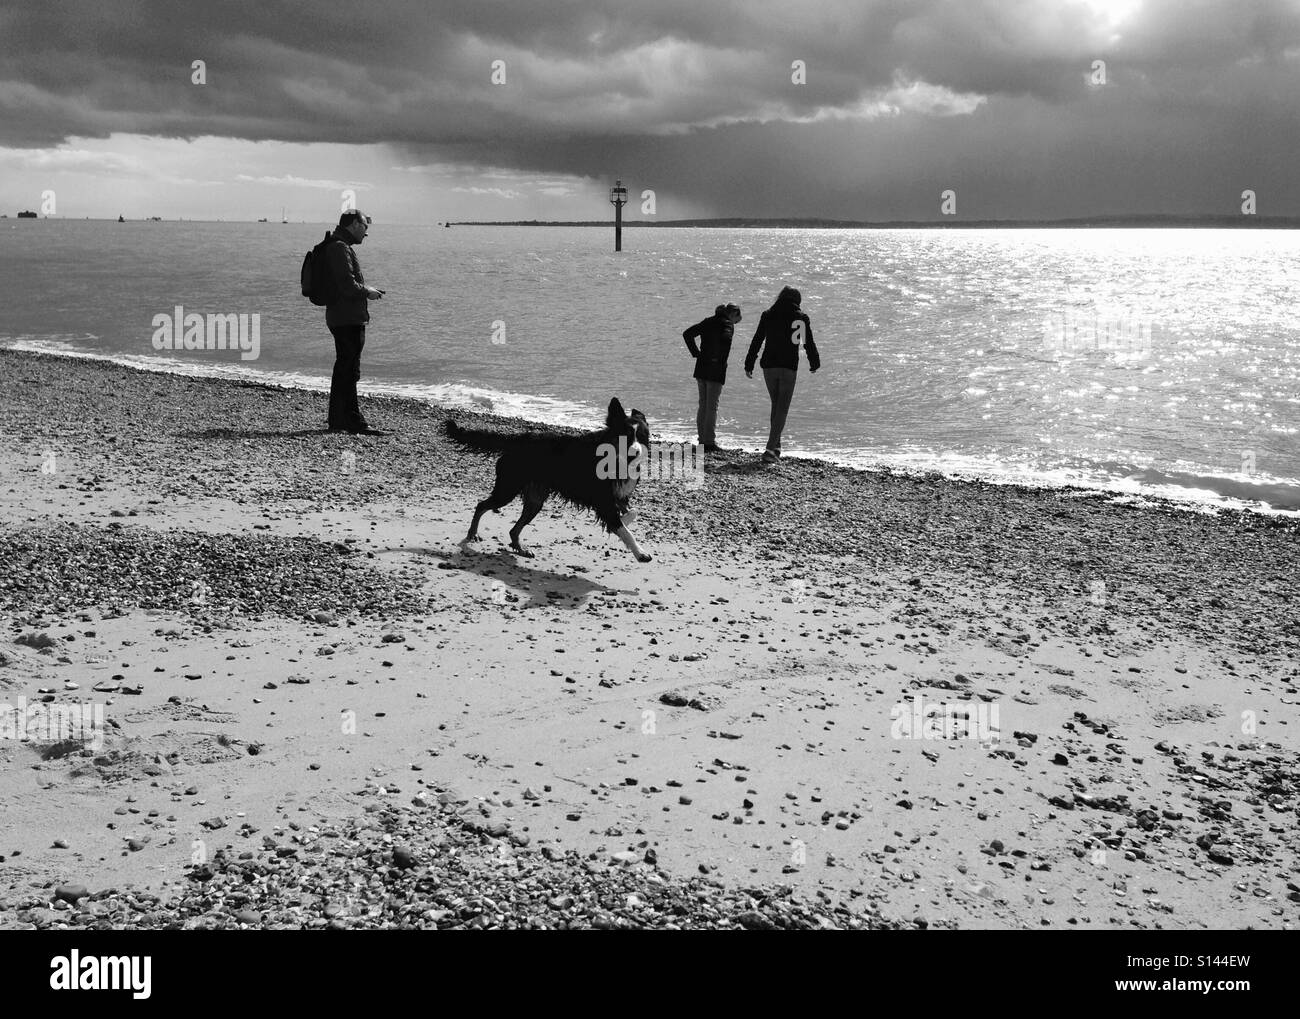 Dog running free on a stormy beach - Stock Image